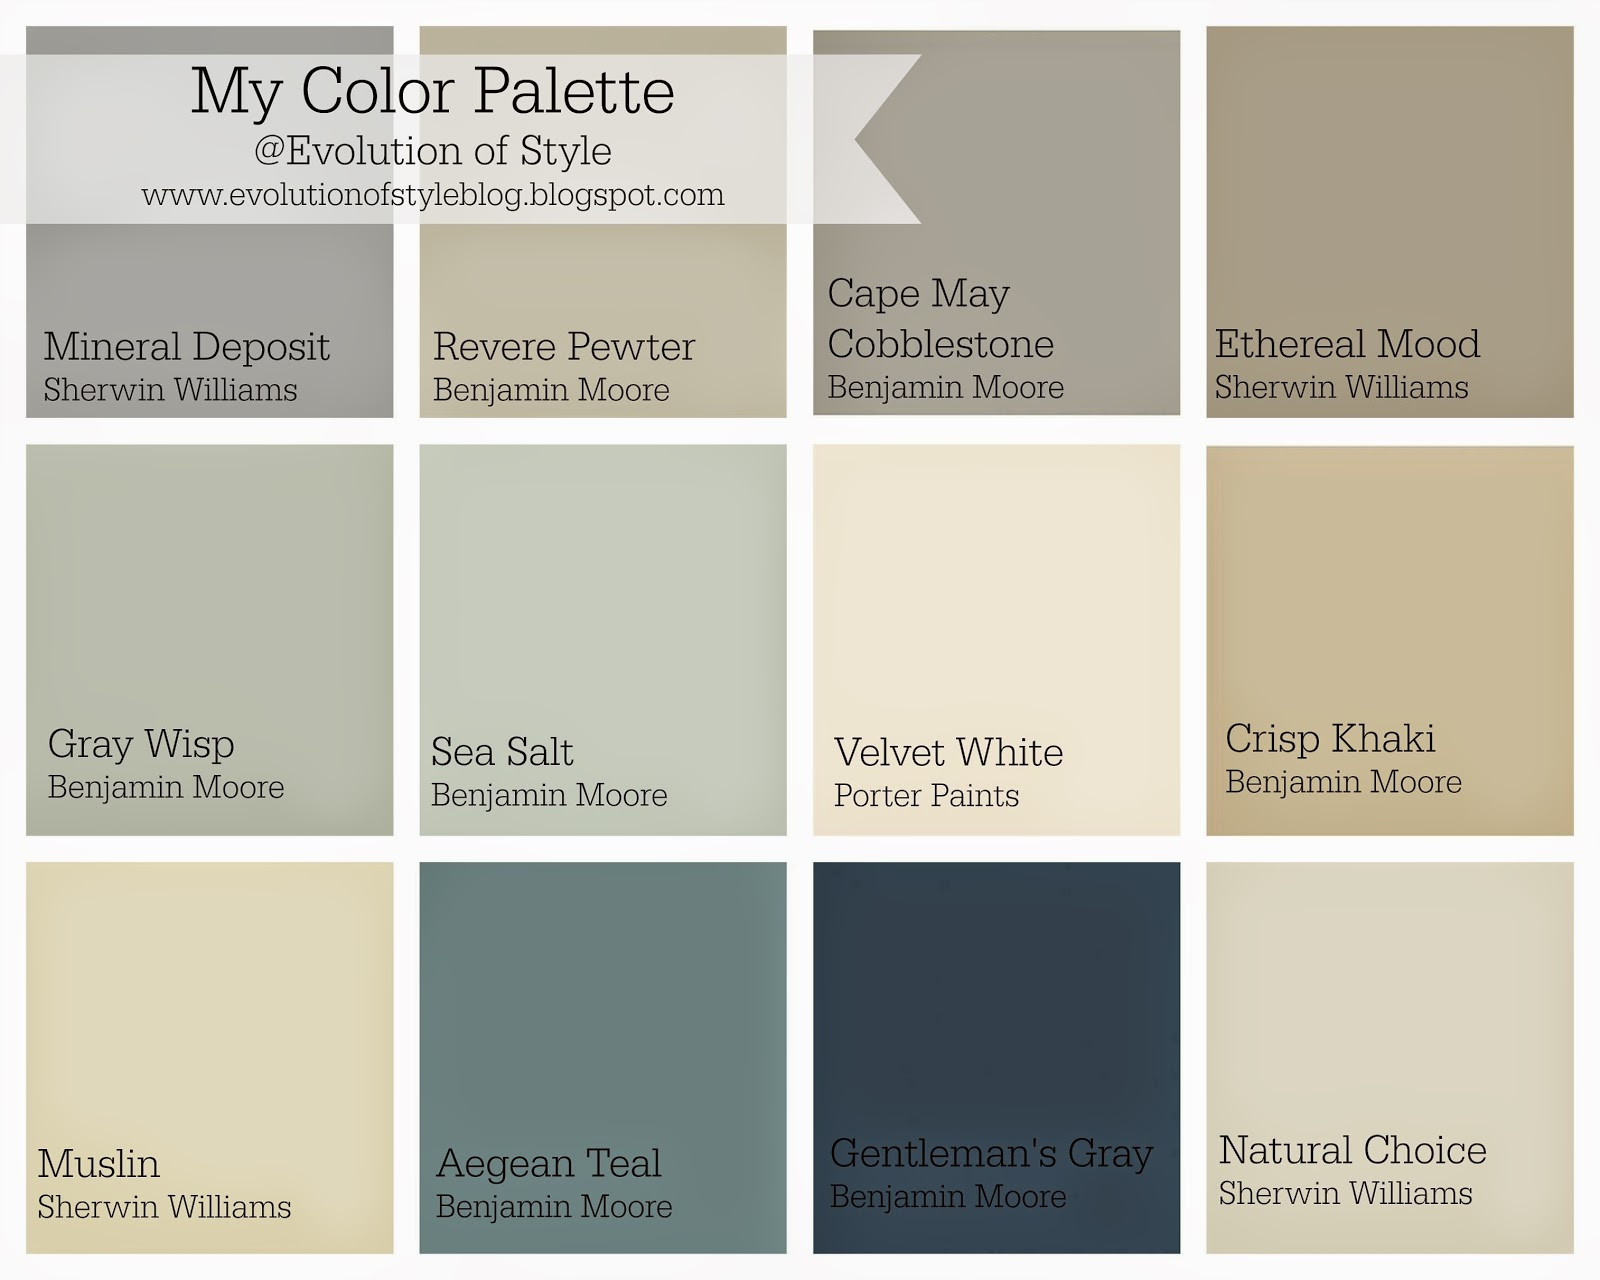 Whole house color palette evolution of style Most popular sherwin williams colors 2015